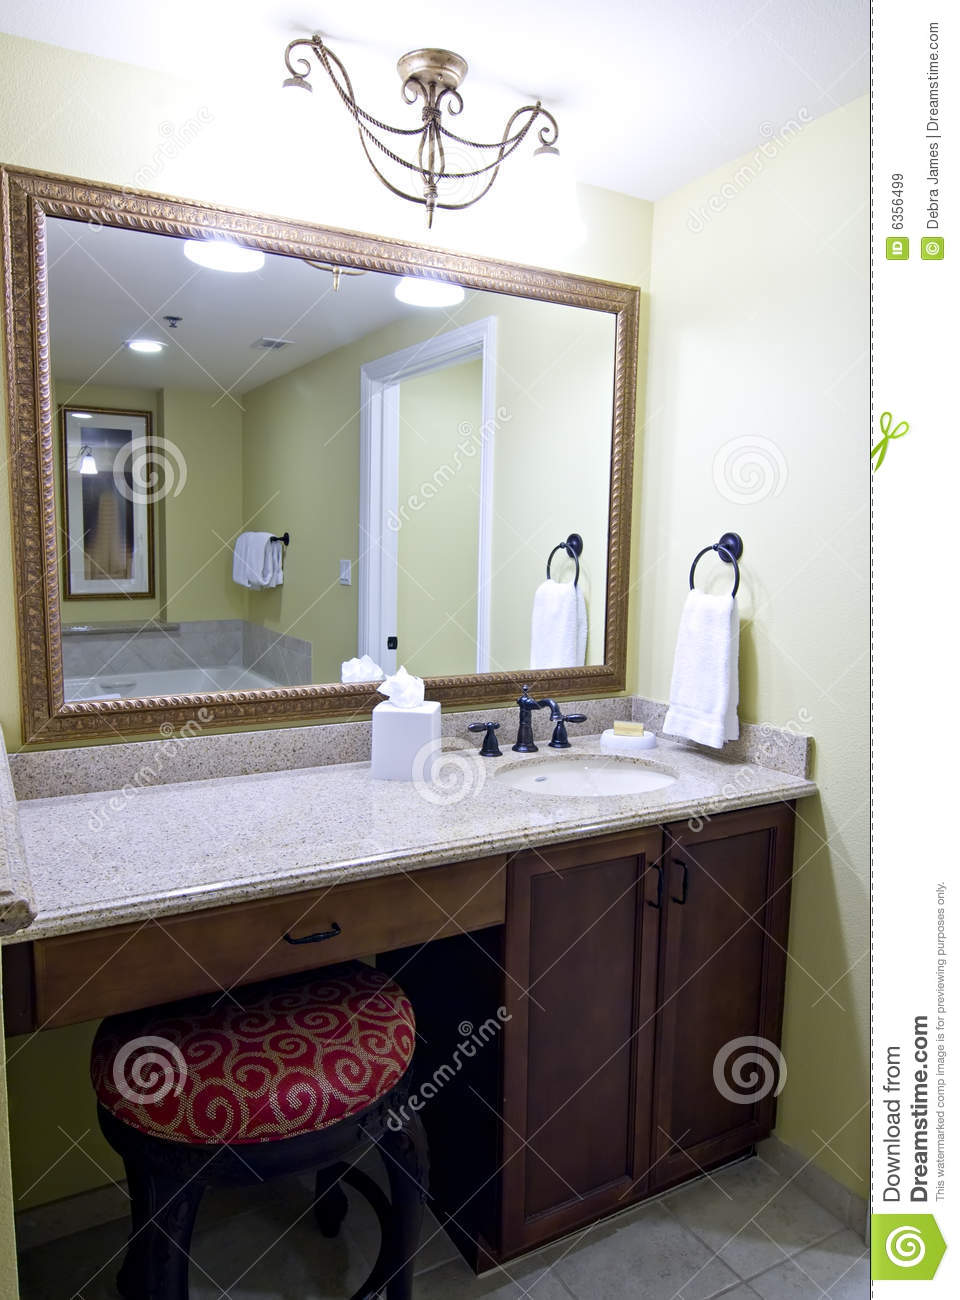 mirror above bathroom vanity stock image image 6356499